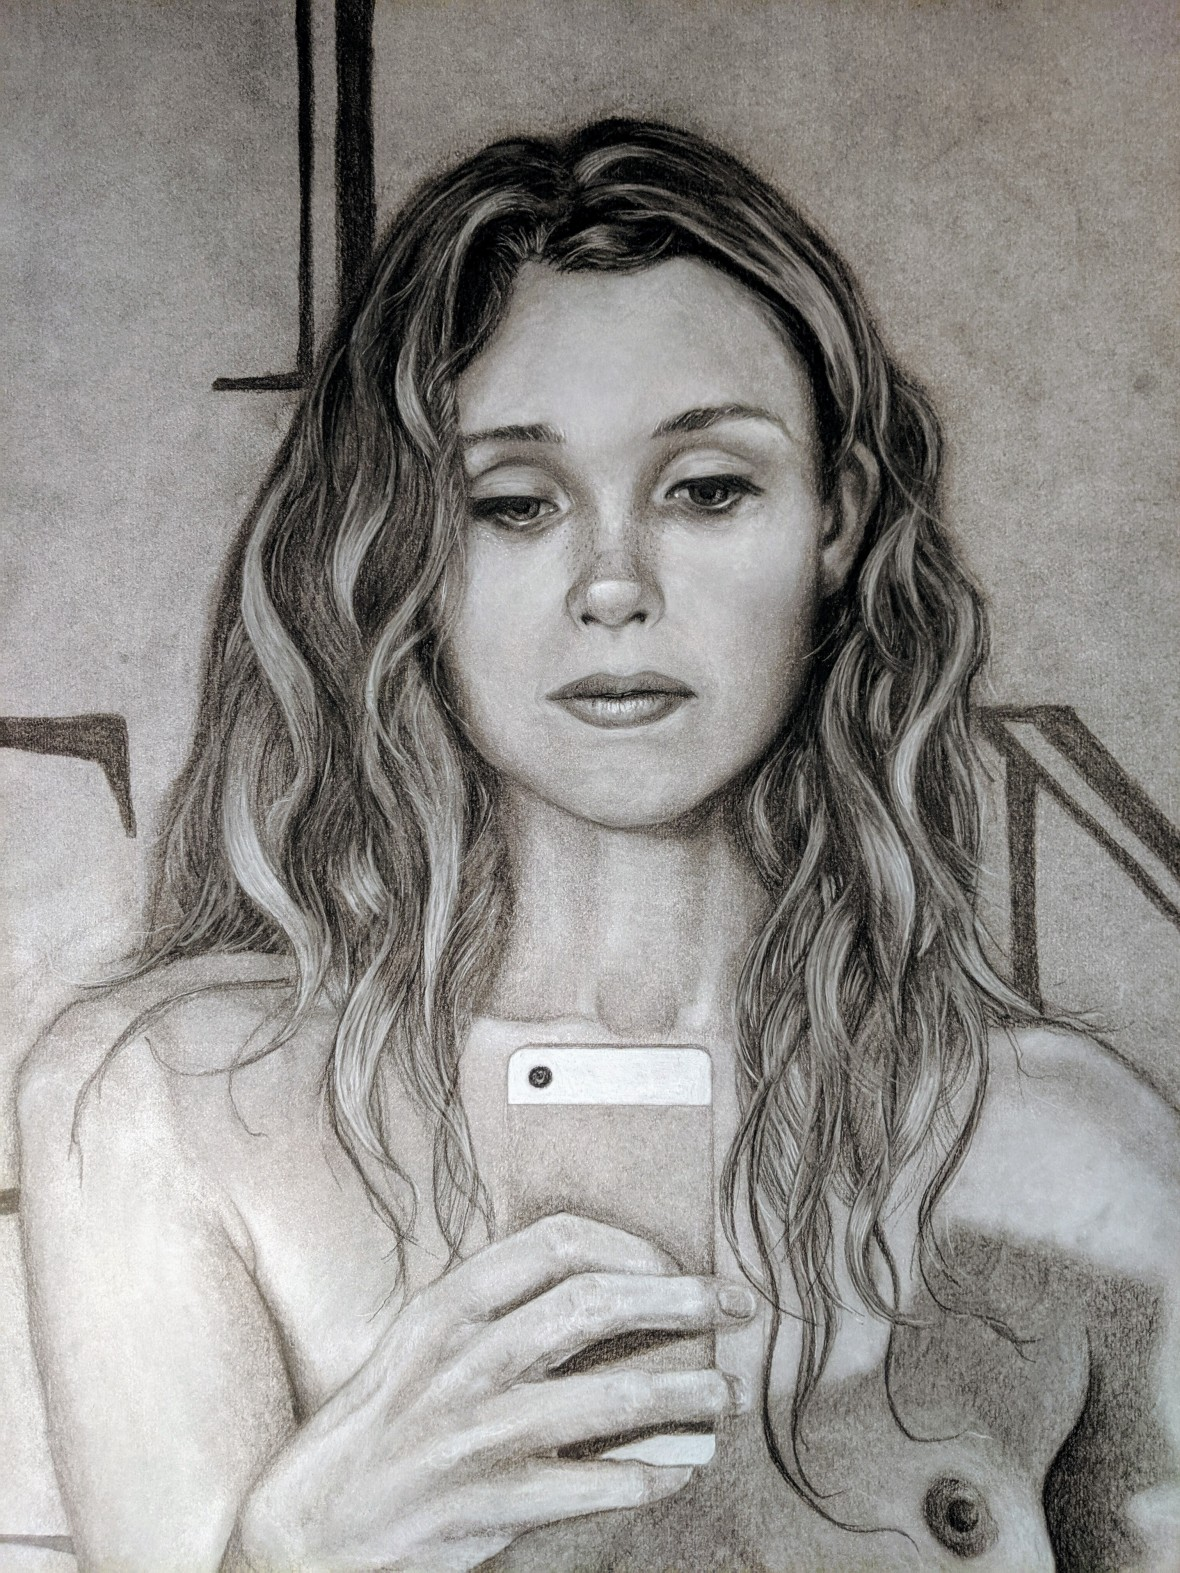 Close up black and white drawing of a naked woman taking a photo of herself in a mirror